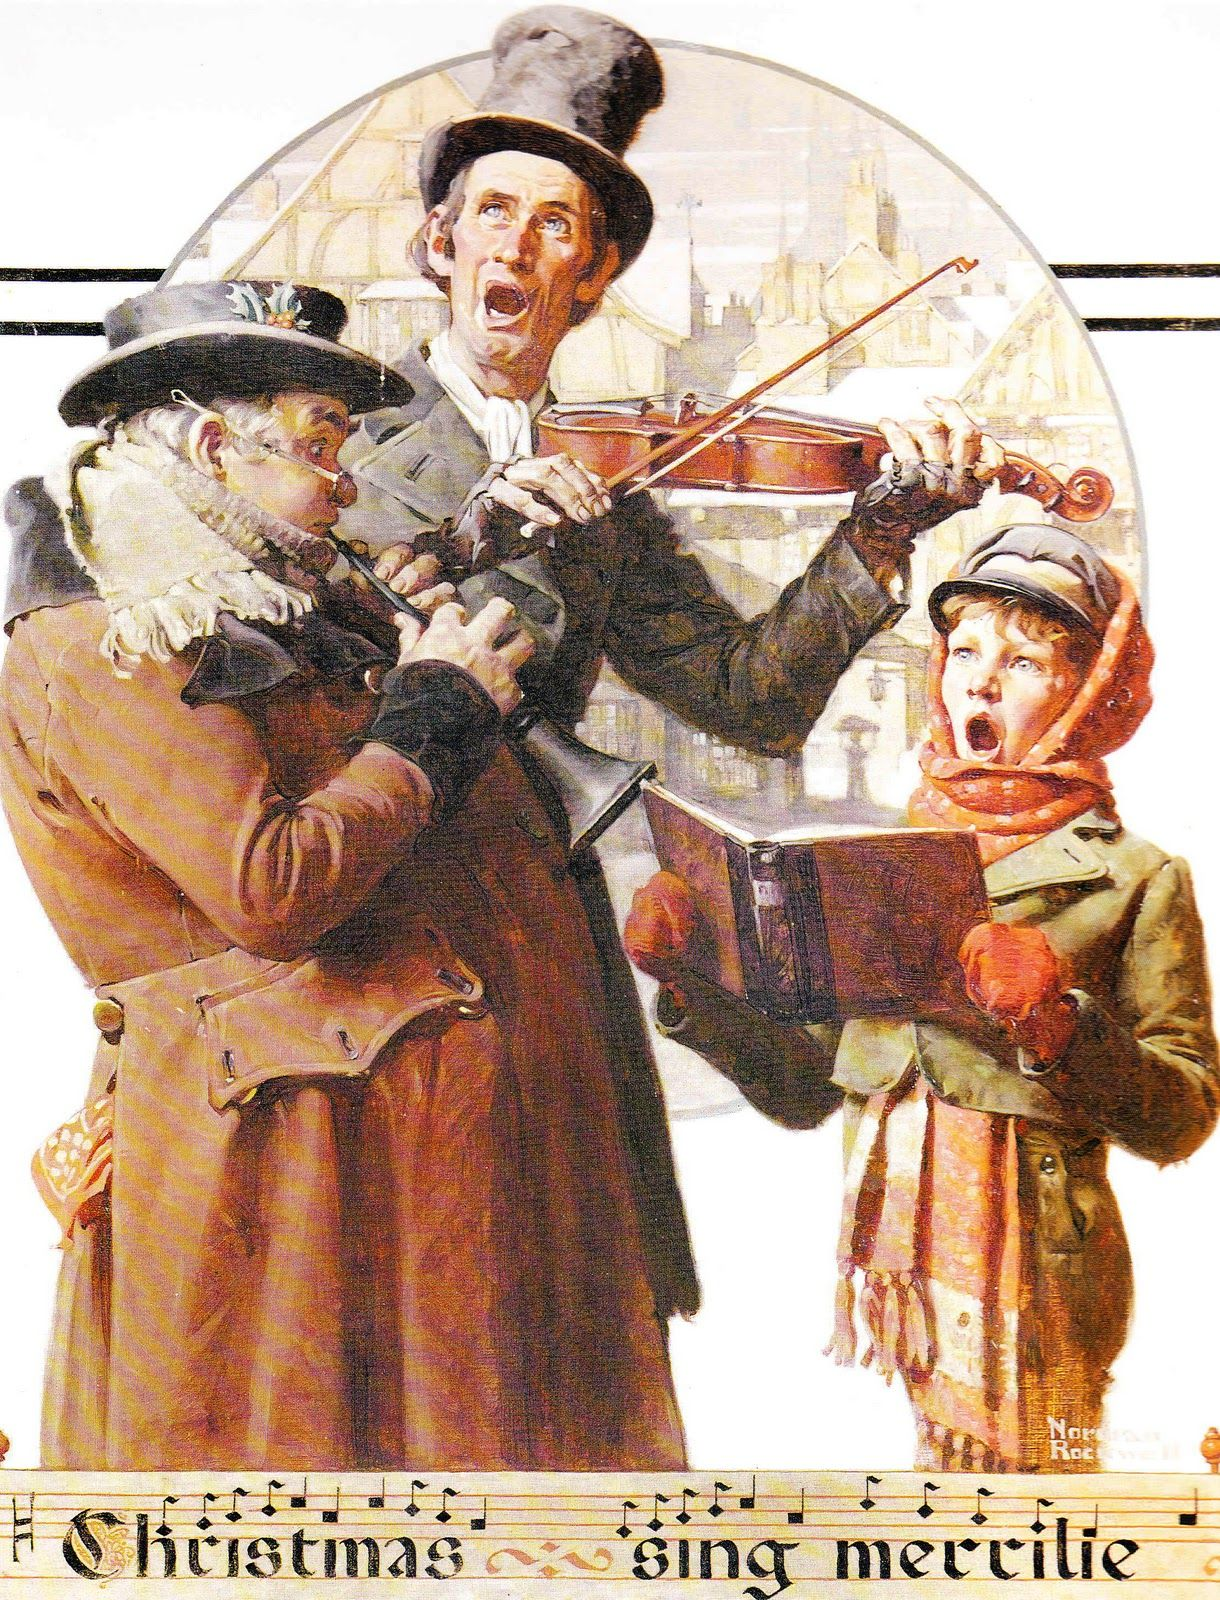 Rockwell singers merry christmas | Artist/Norman Rockwell ...